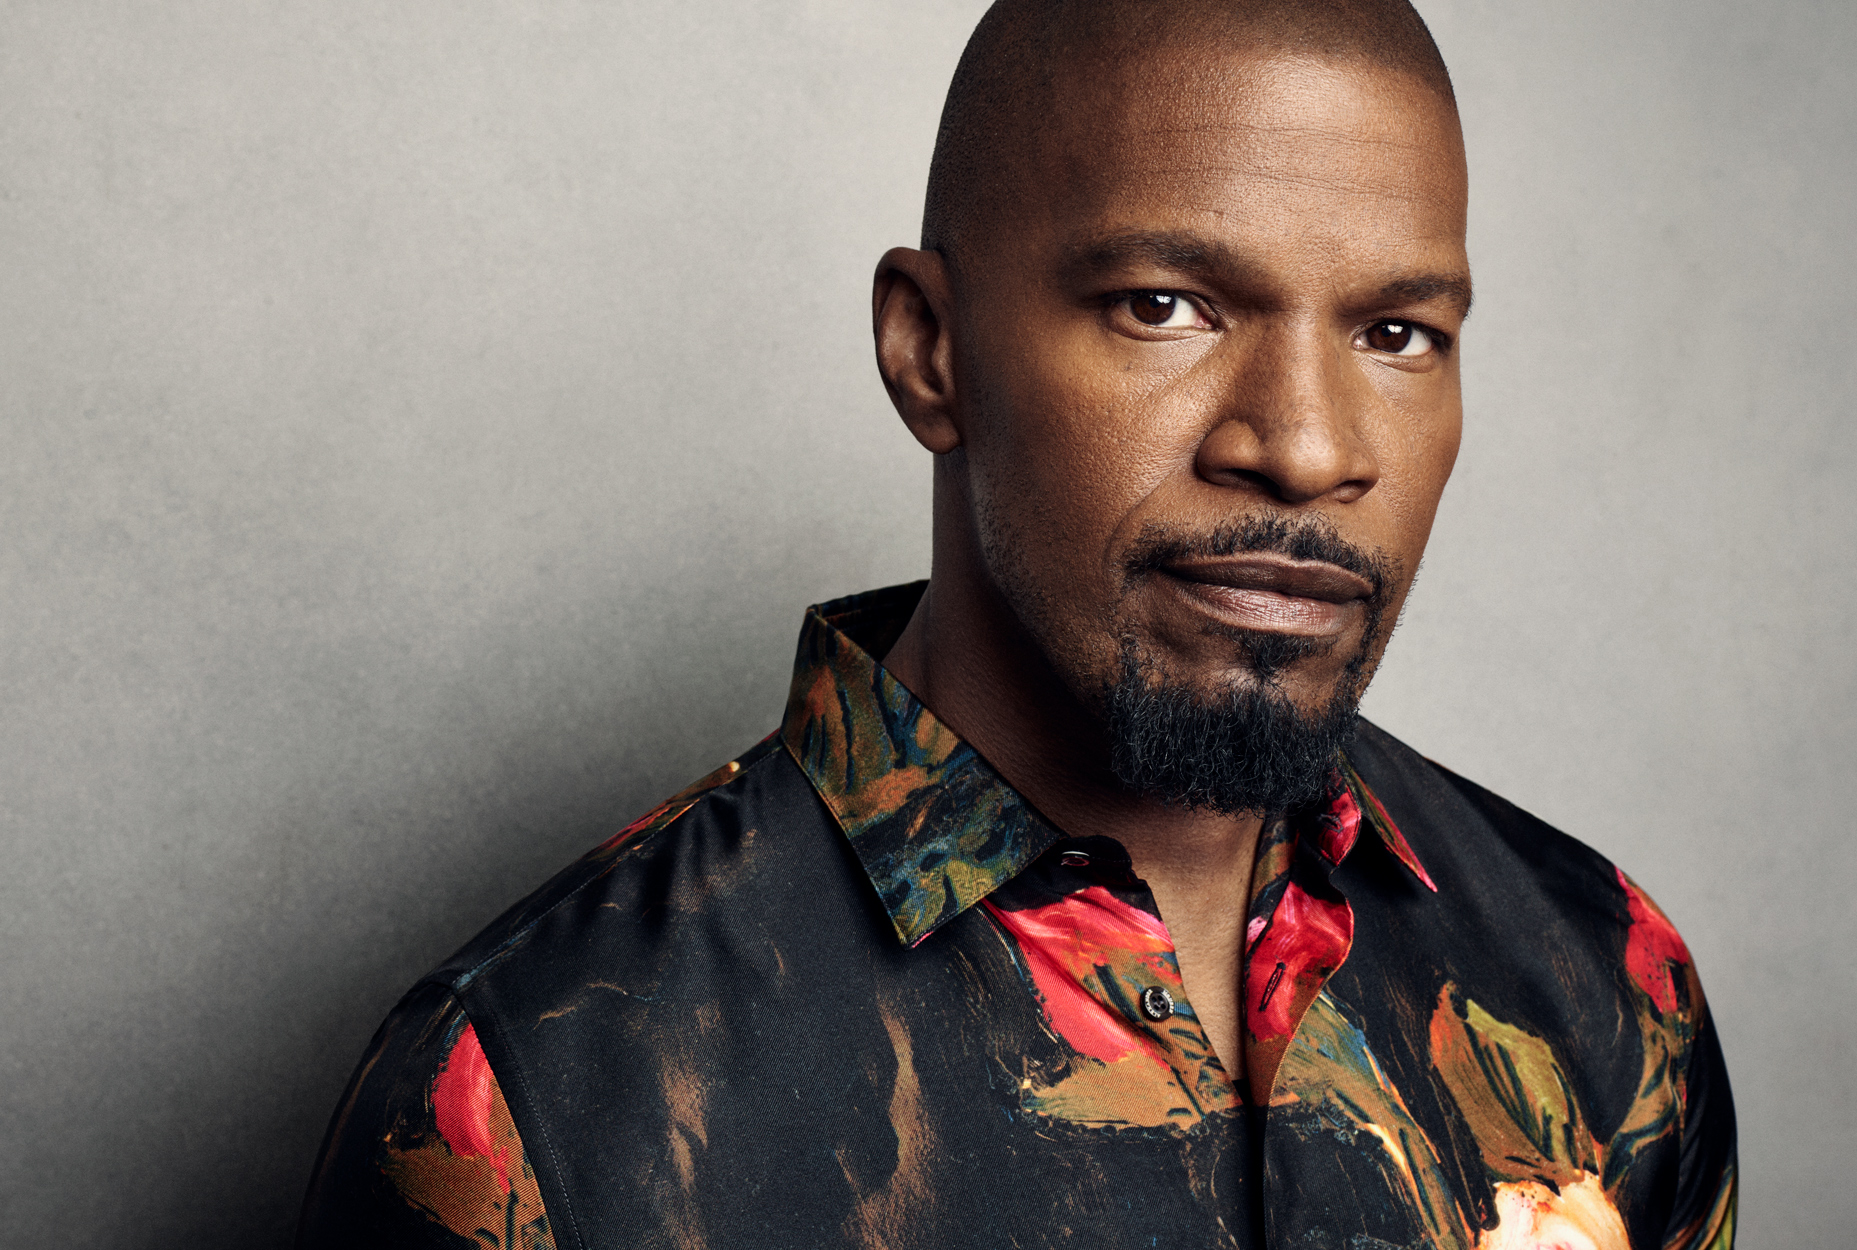 Celebrity Photographer Michael Schwartz: Jamie Foxx for Lionsgate Robin Hood movie